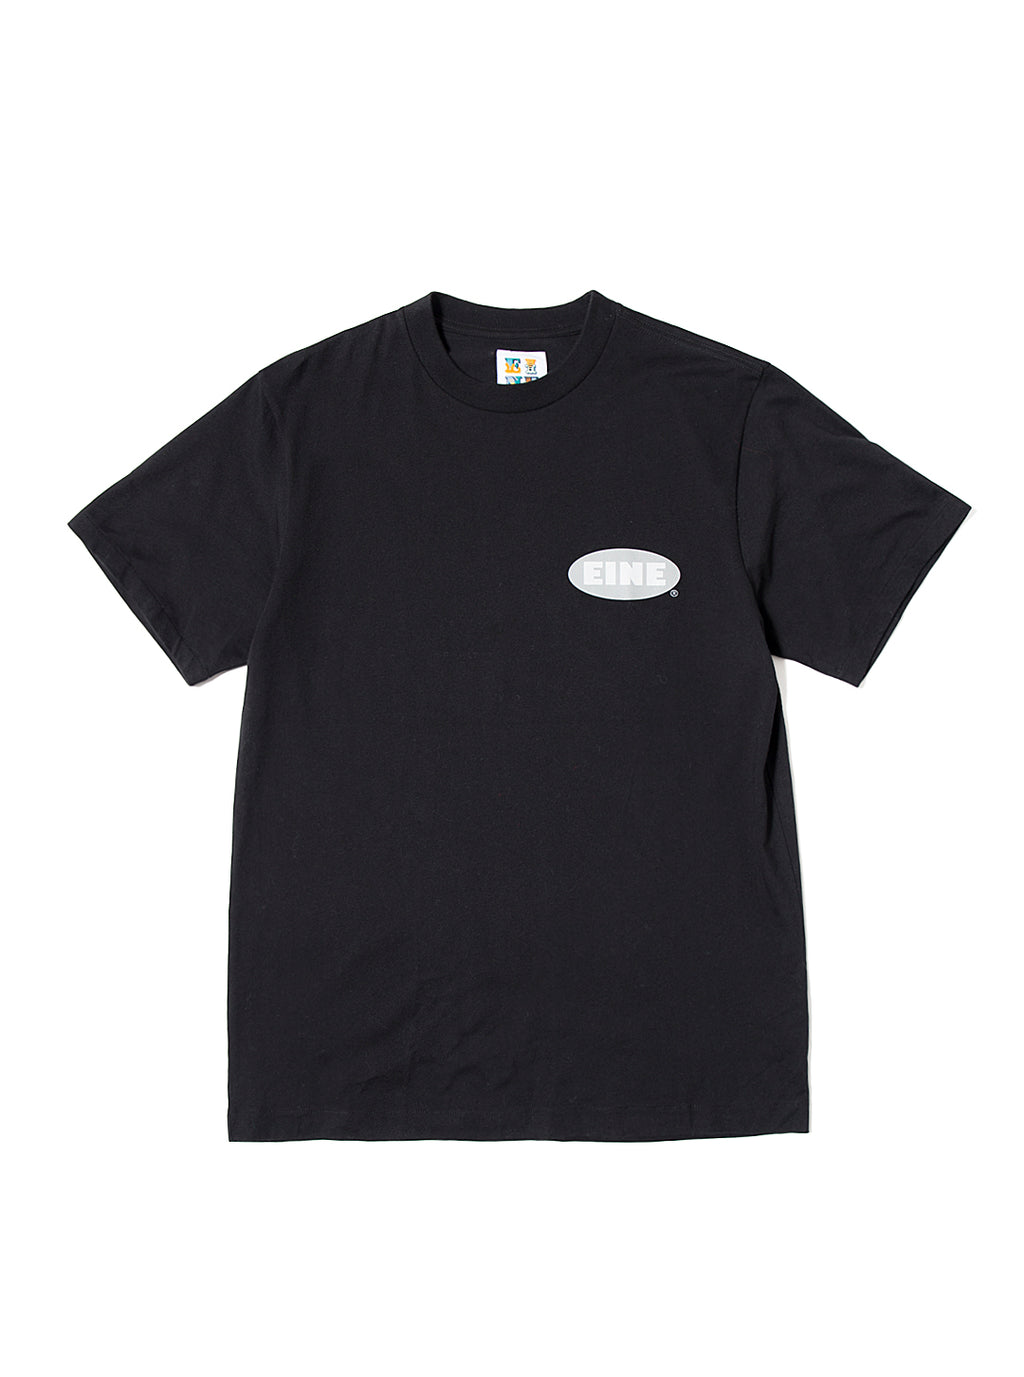 EINE Stock Logo S/S T-Shirt - Black Sample